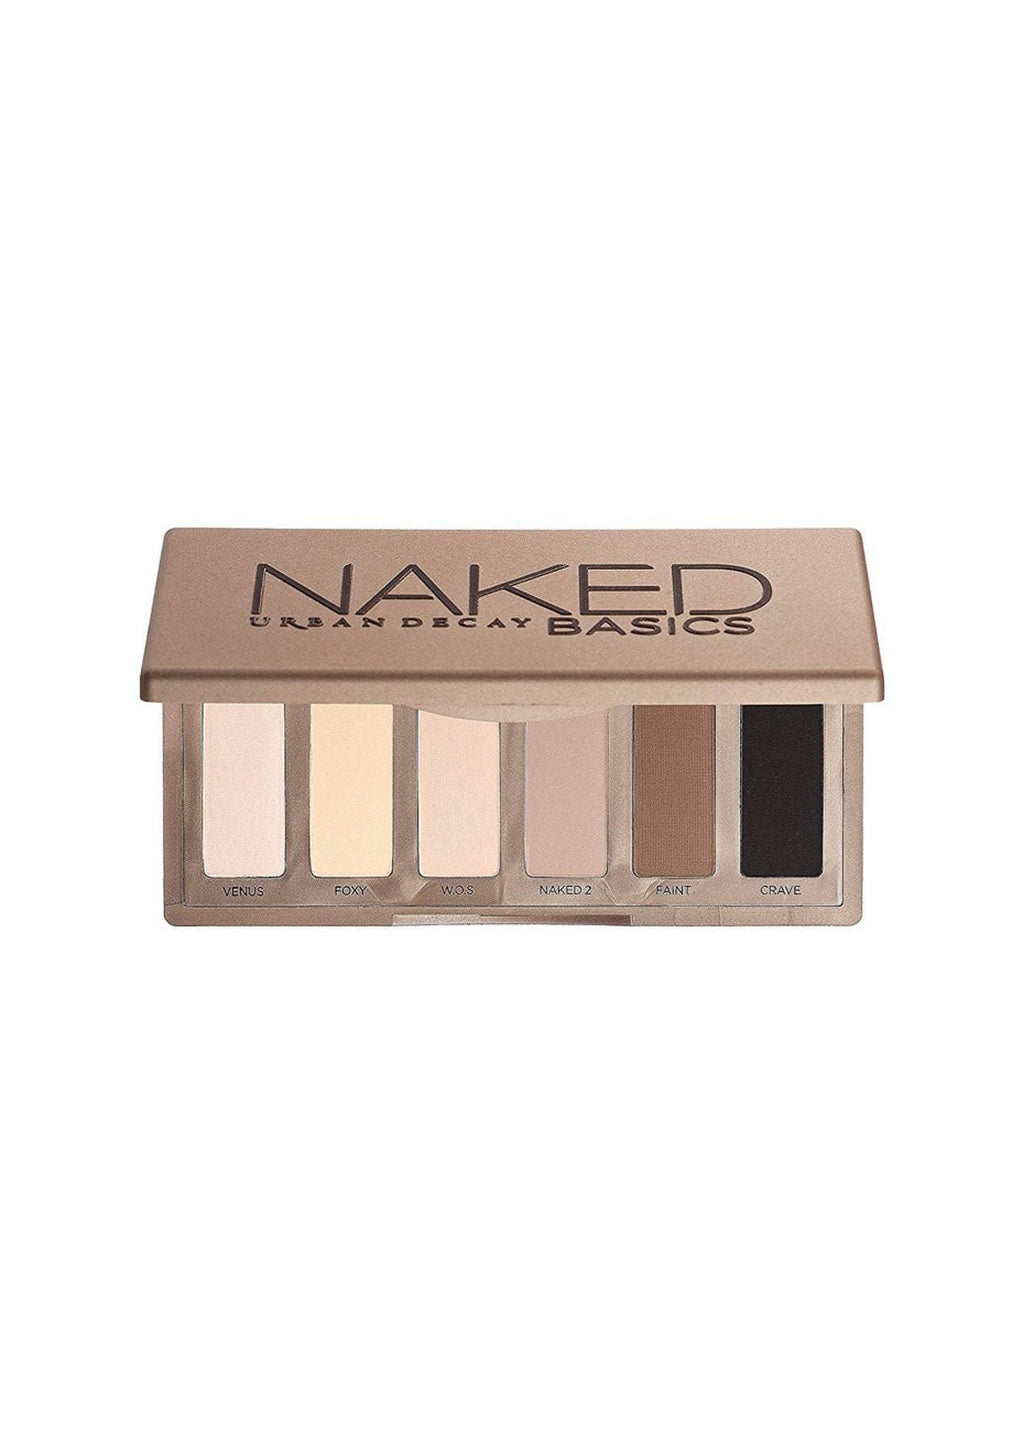 URBAN DECAY - NAKED BASICS Eyeshadow Palette